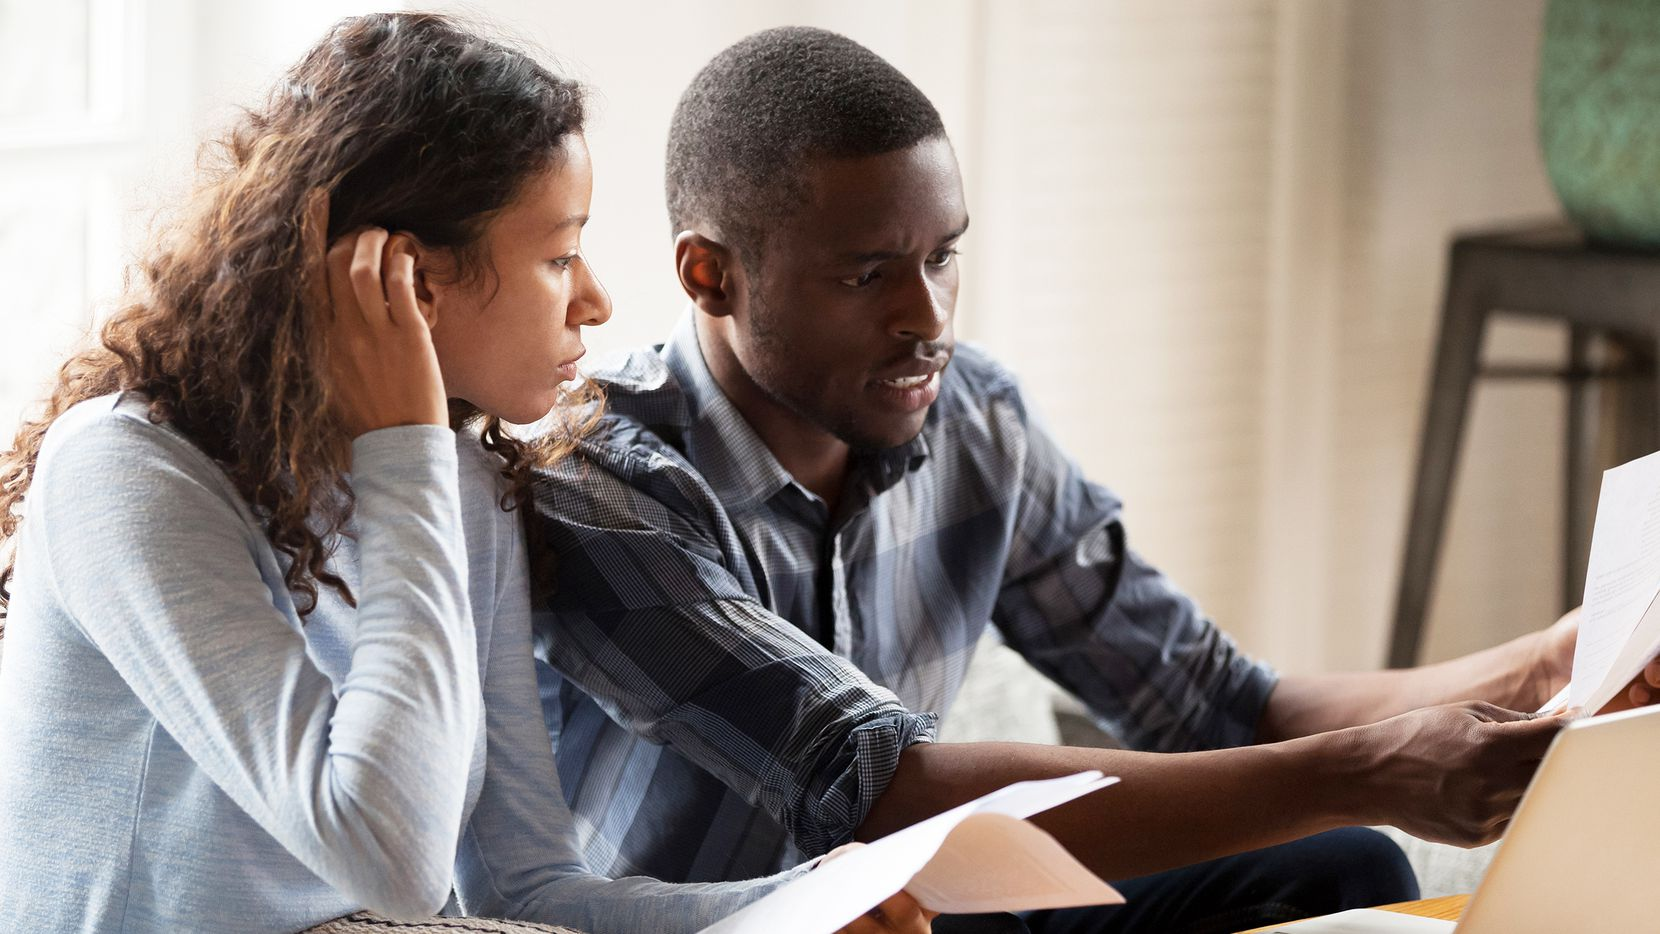 With the right planning and financial habits, millennials can eventually overcome homebuying obstacles.